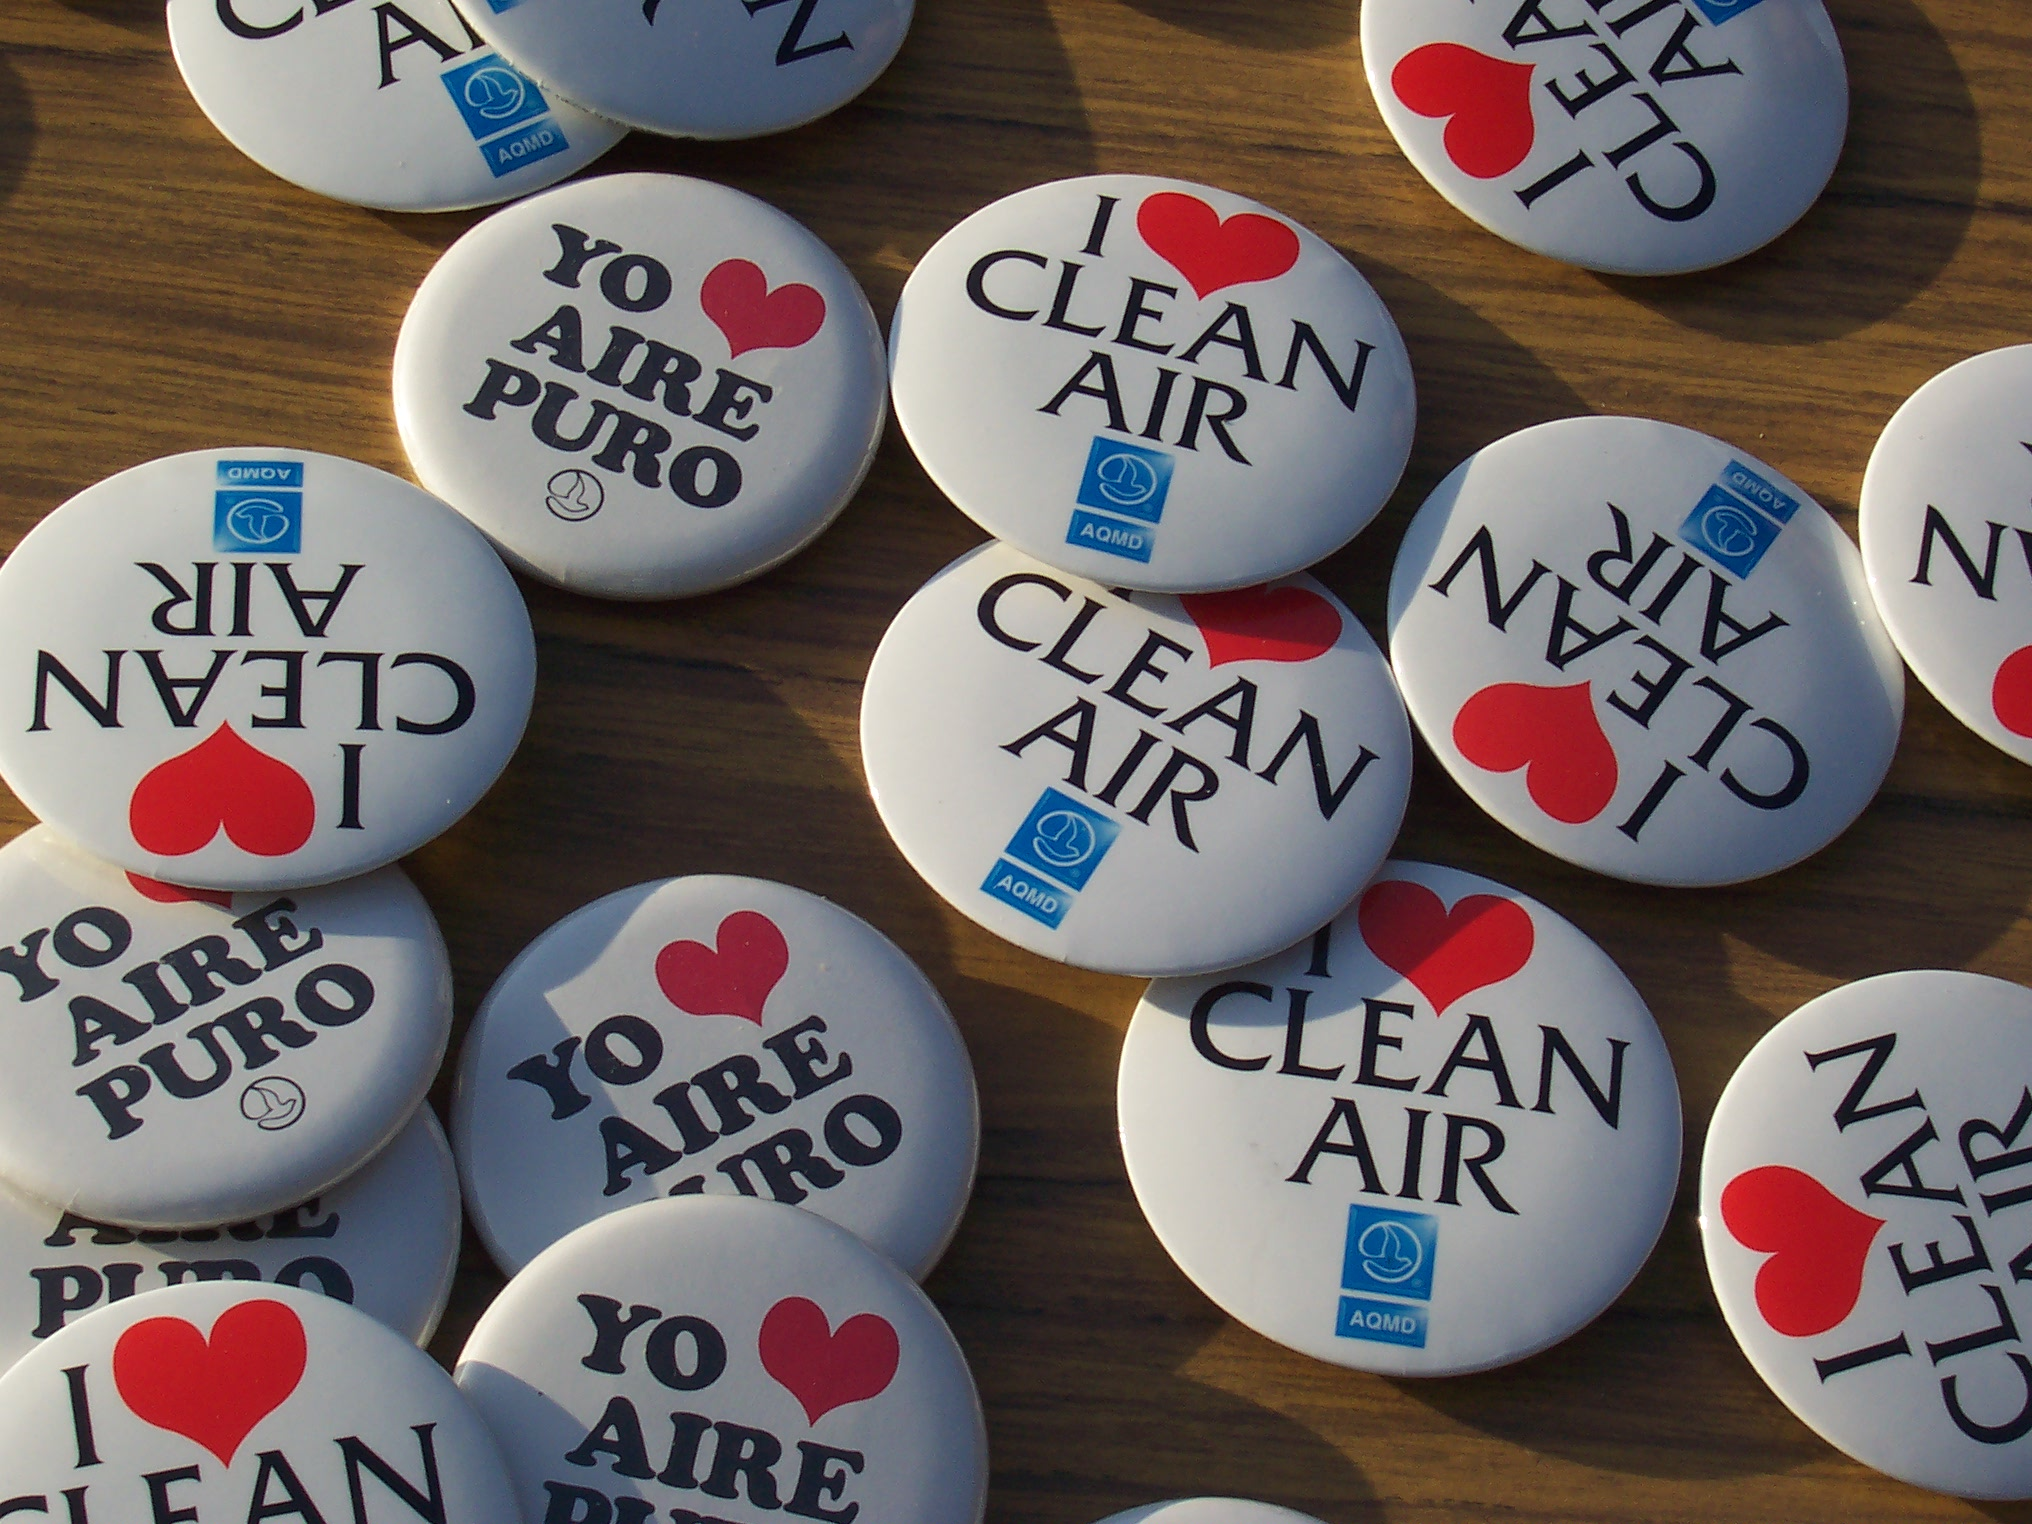 Clean Air Buttons